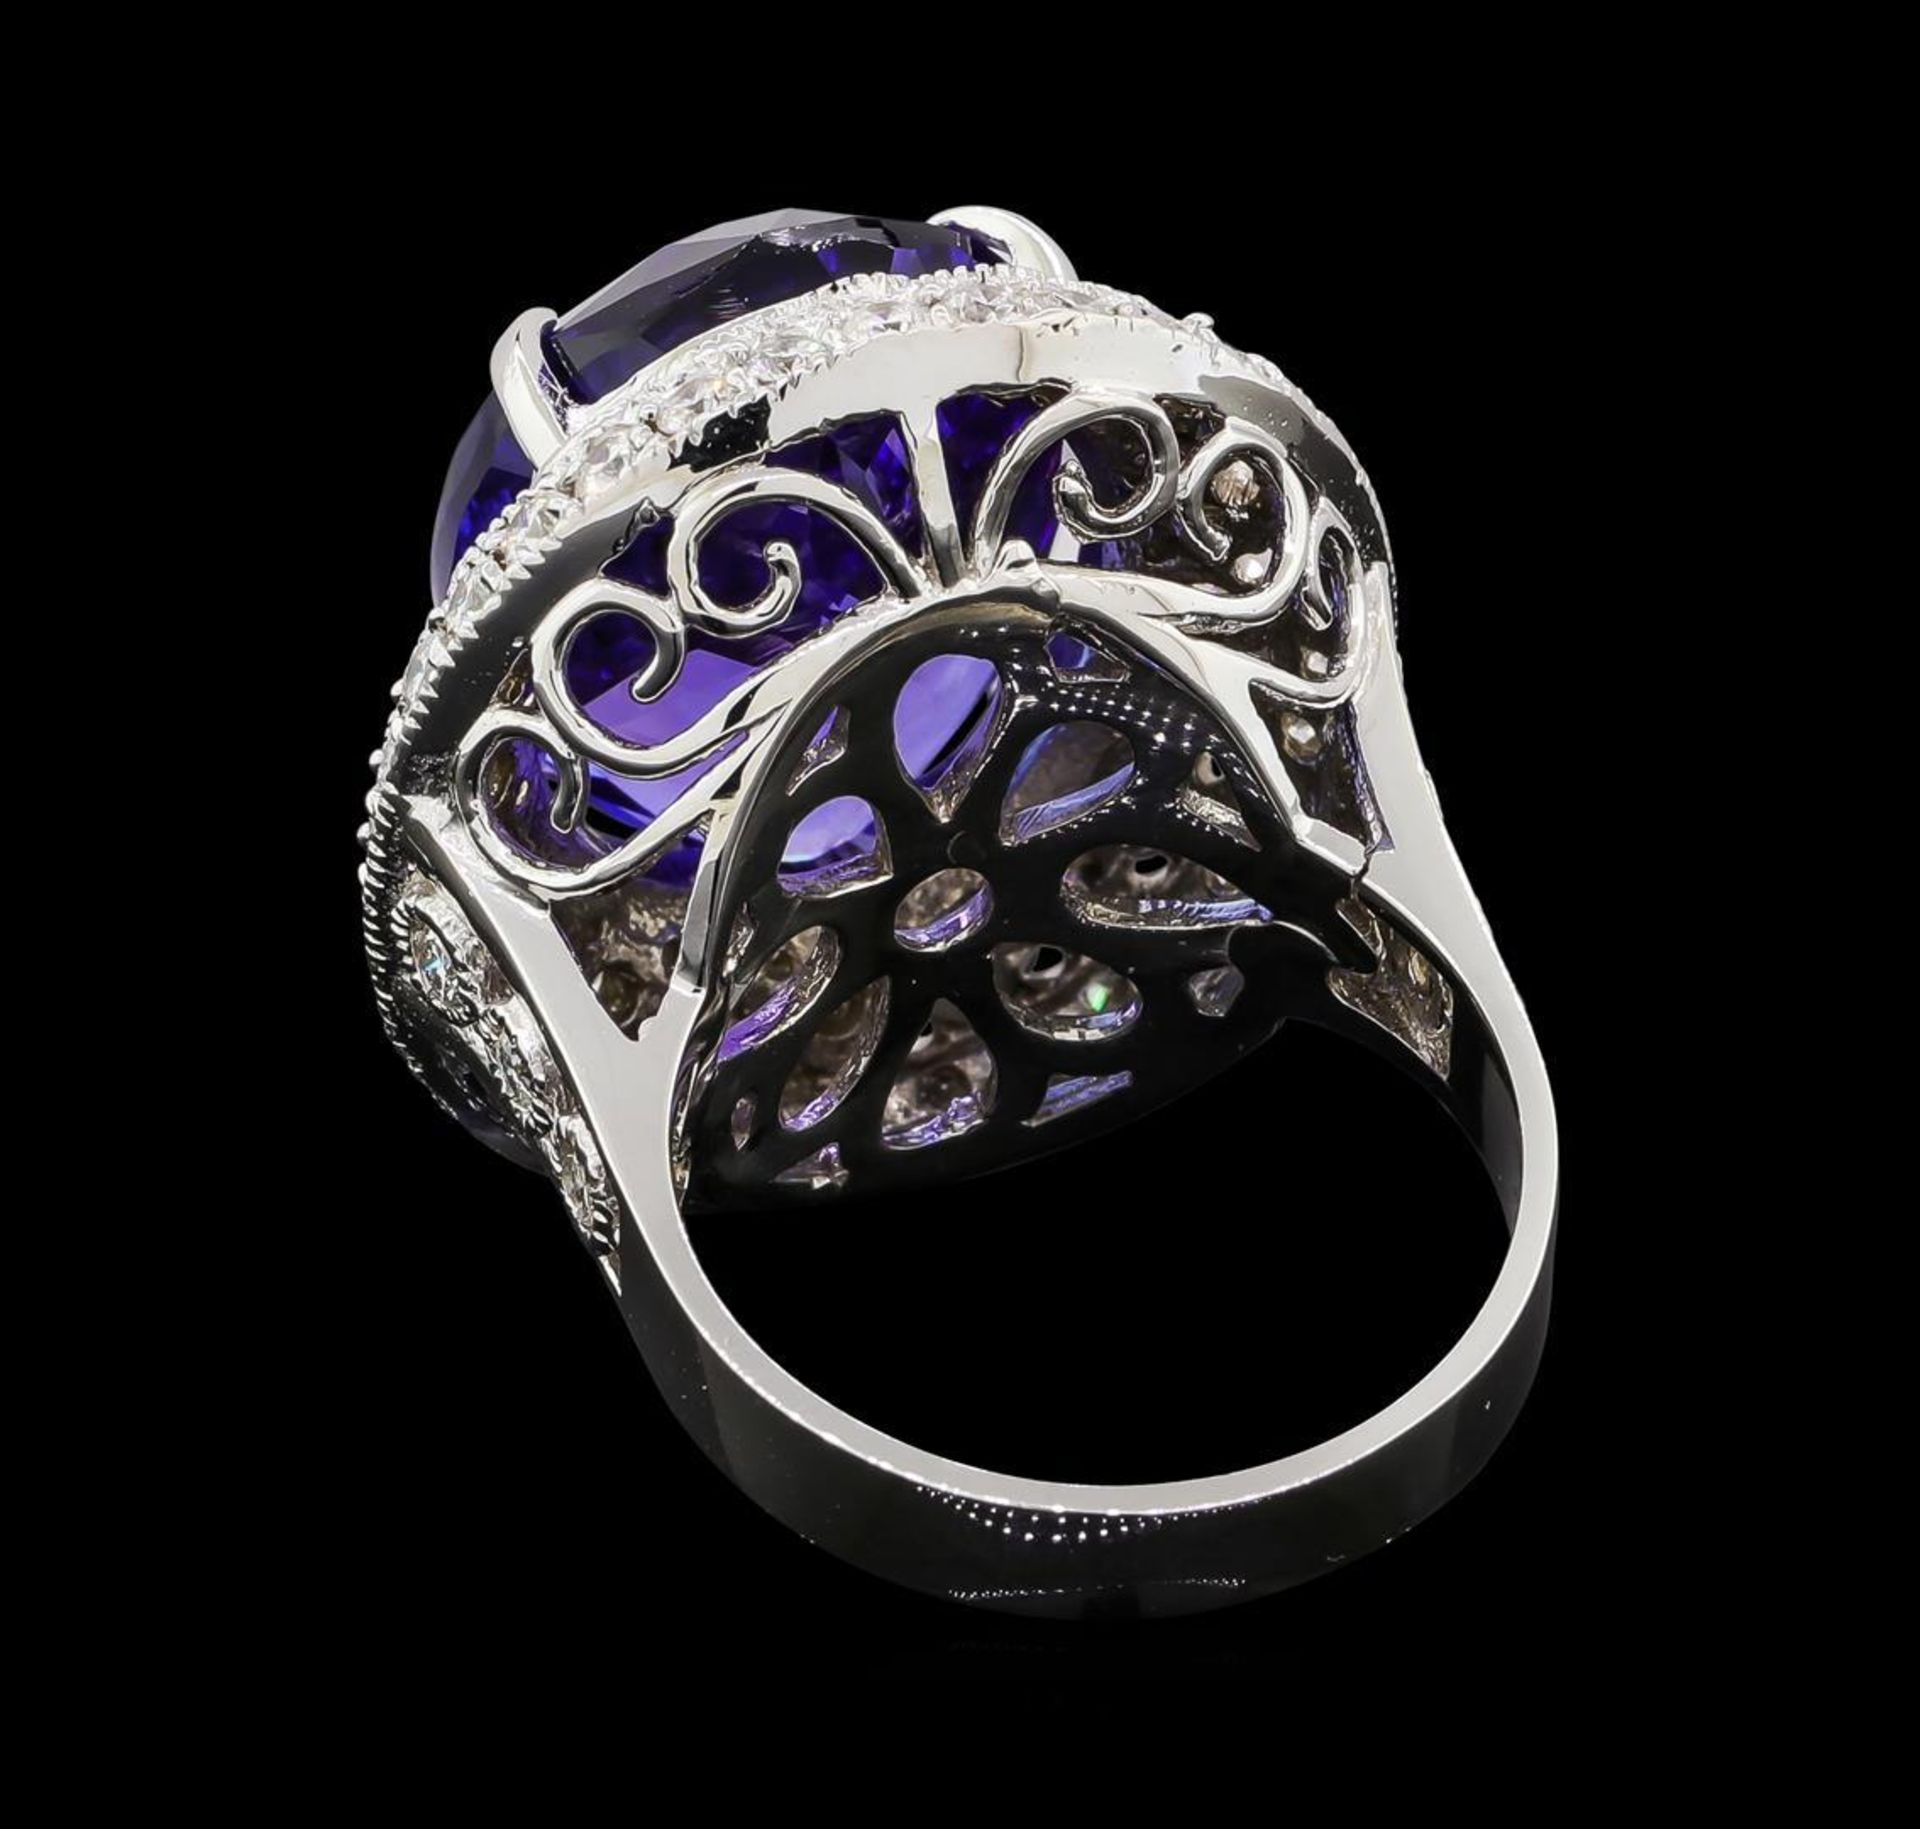 GIA Cert 19.95 ctw Tanzanite and Diamond Ring - 14KT White Gold - Image 3 of 6